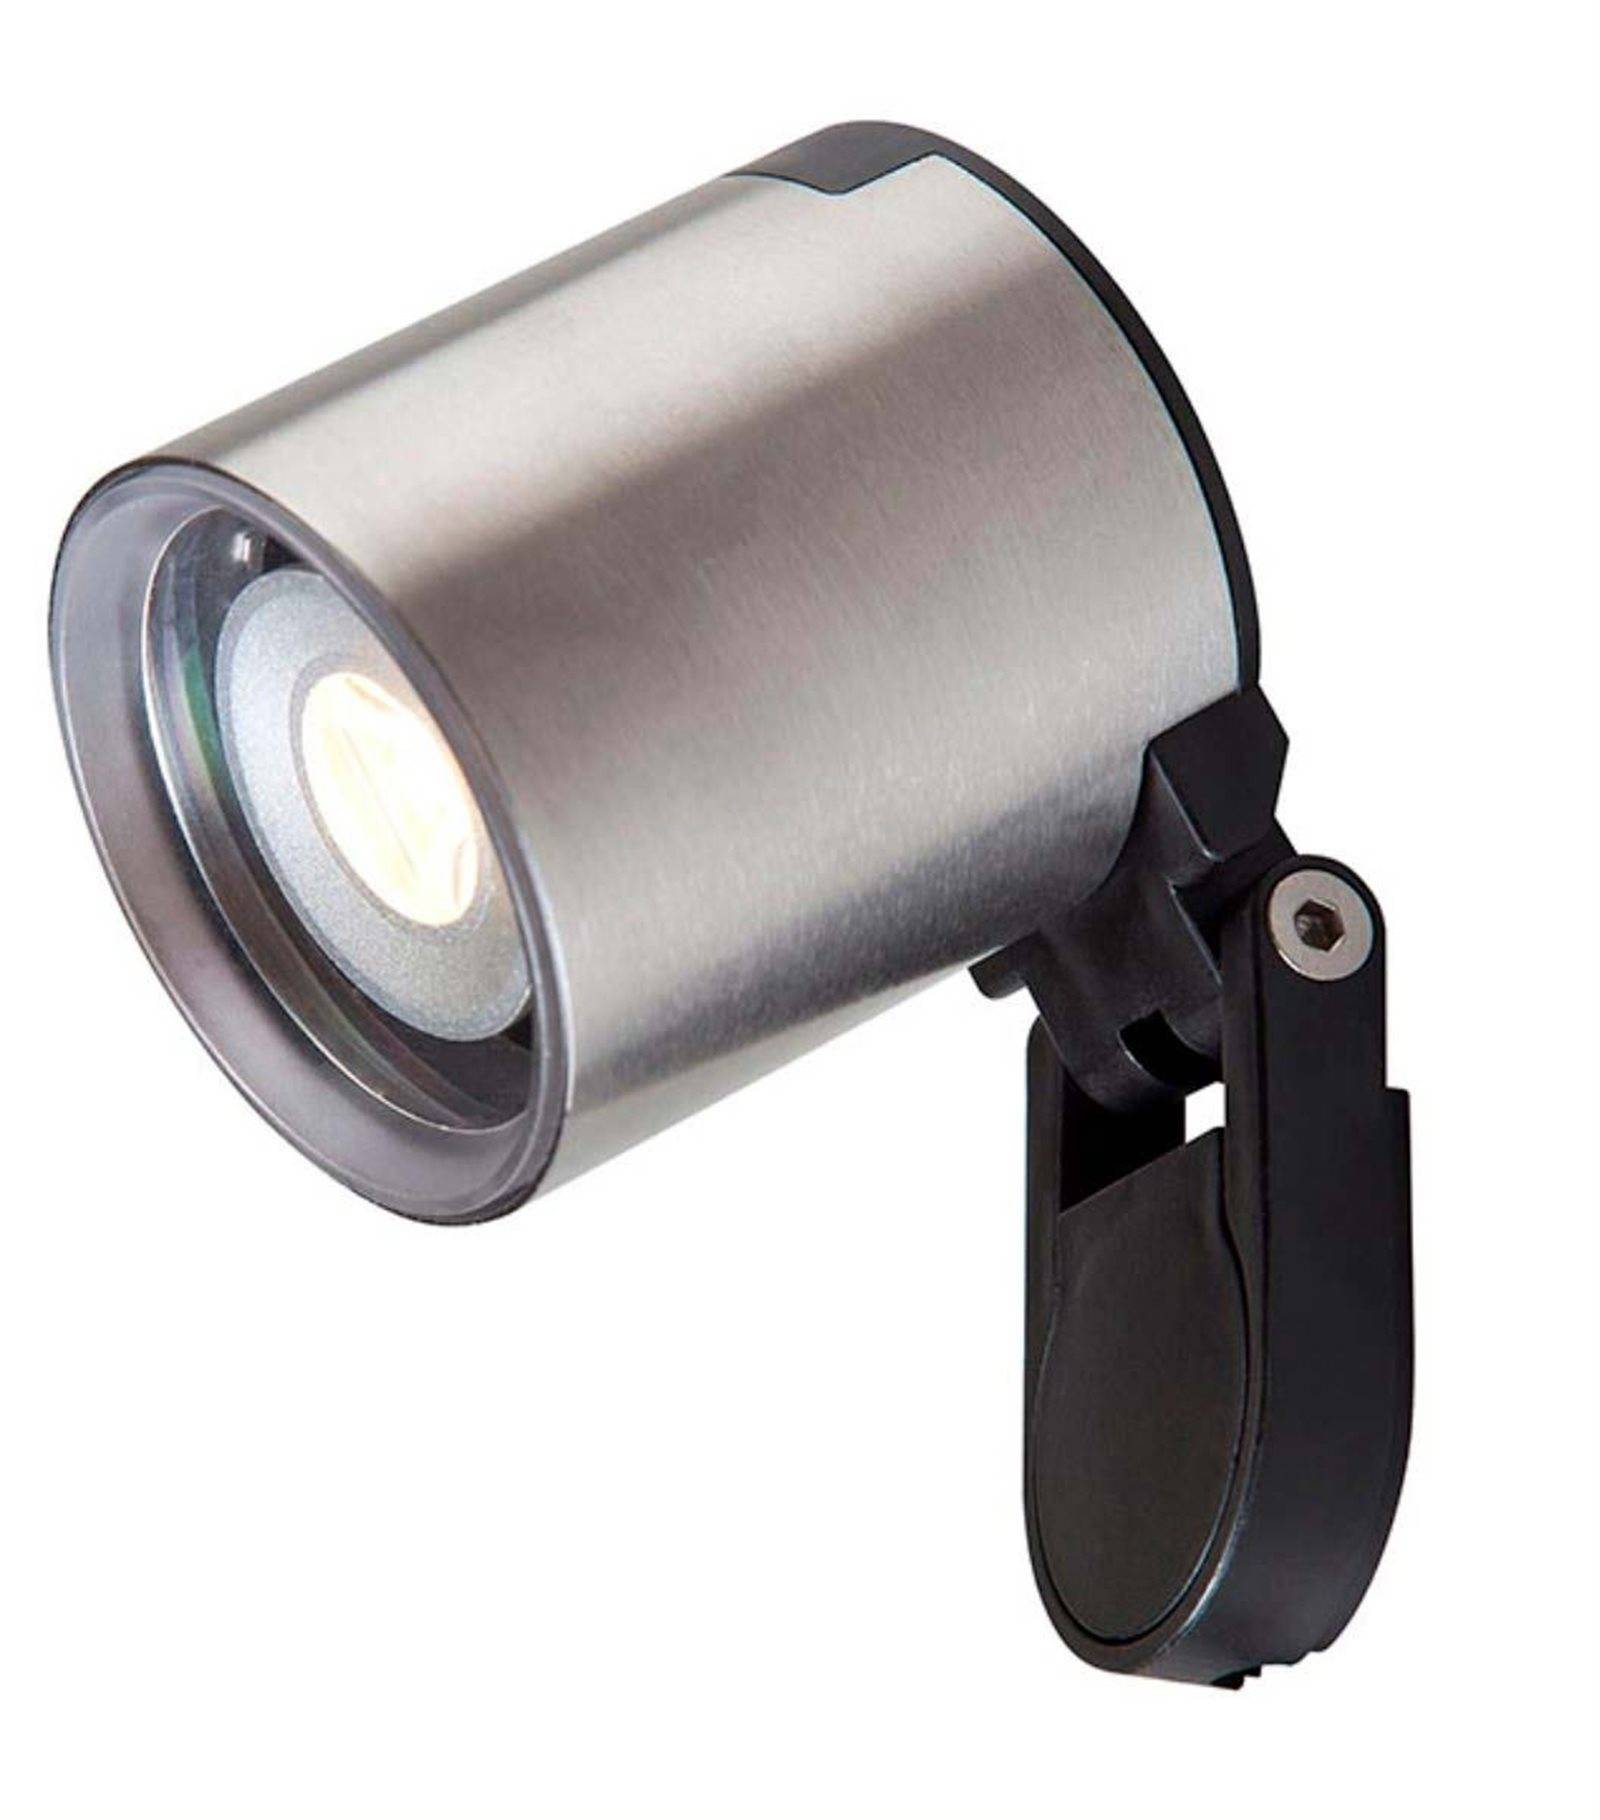 Projecteur Extérieur Orientable Spot Orientable Exterieur Interesting Projecteur Led Extrieur